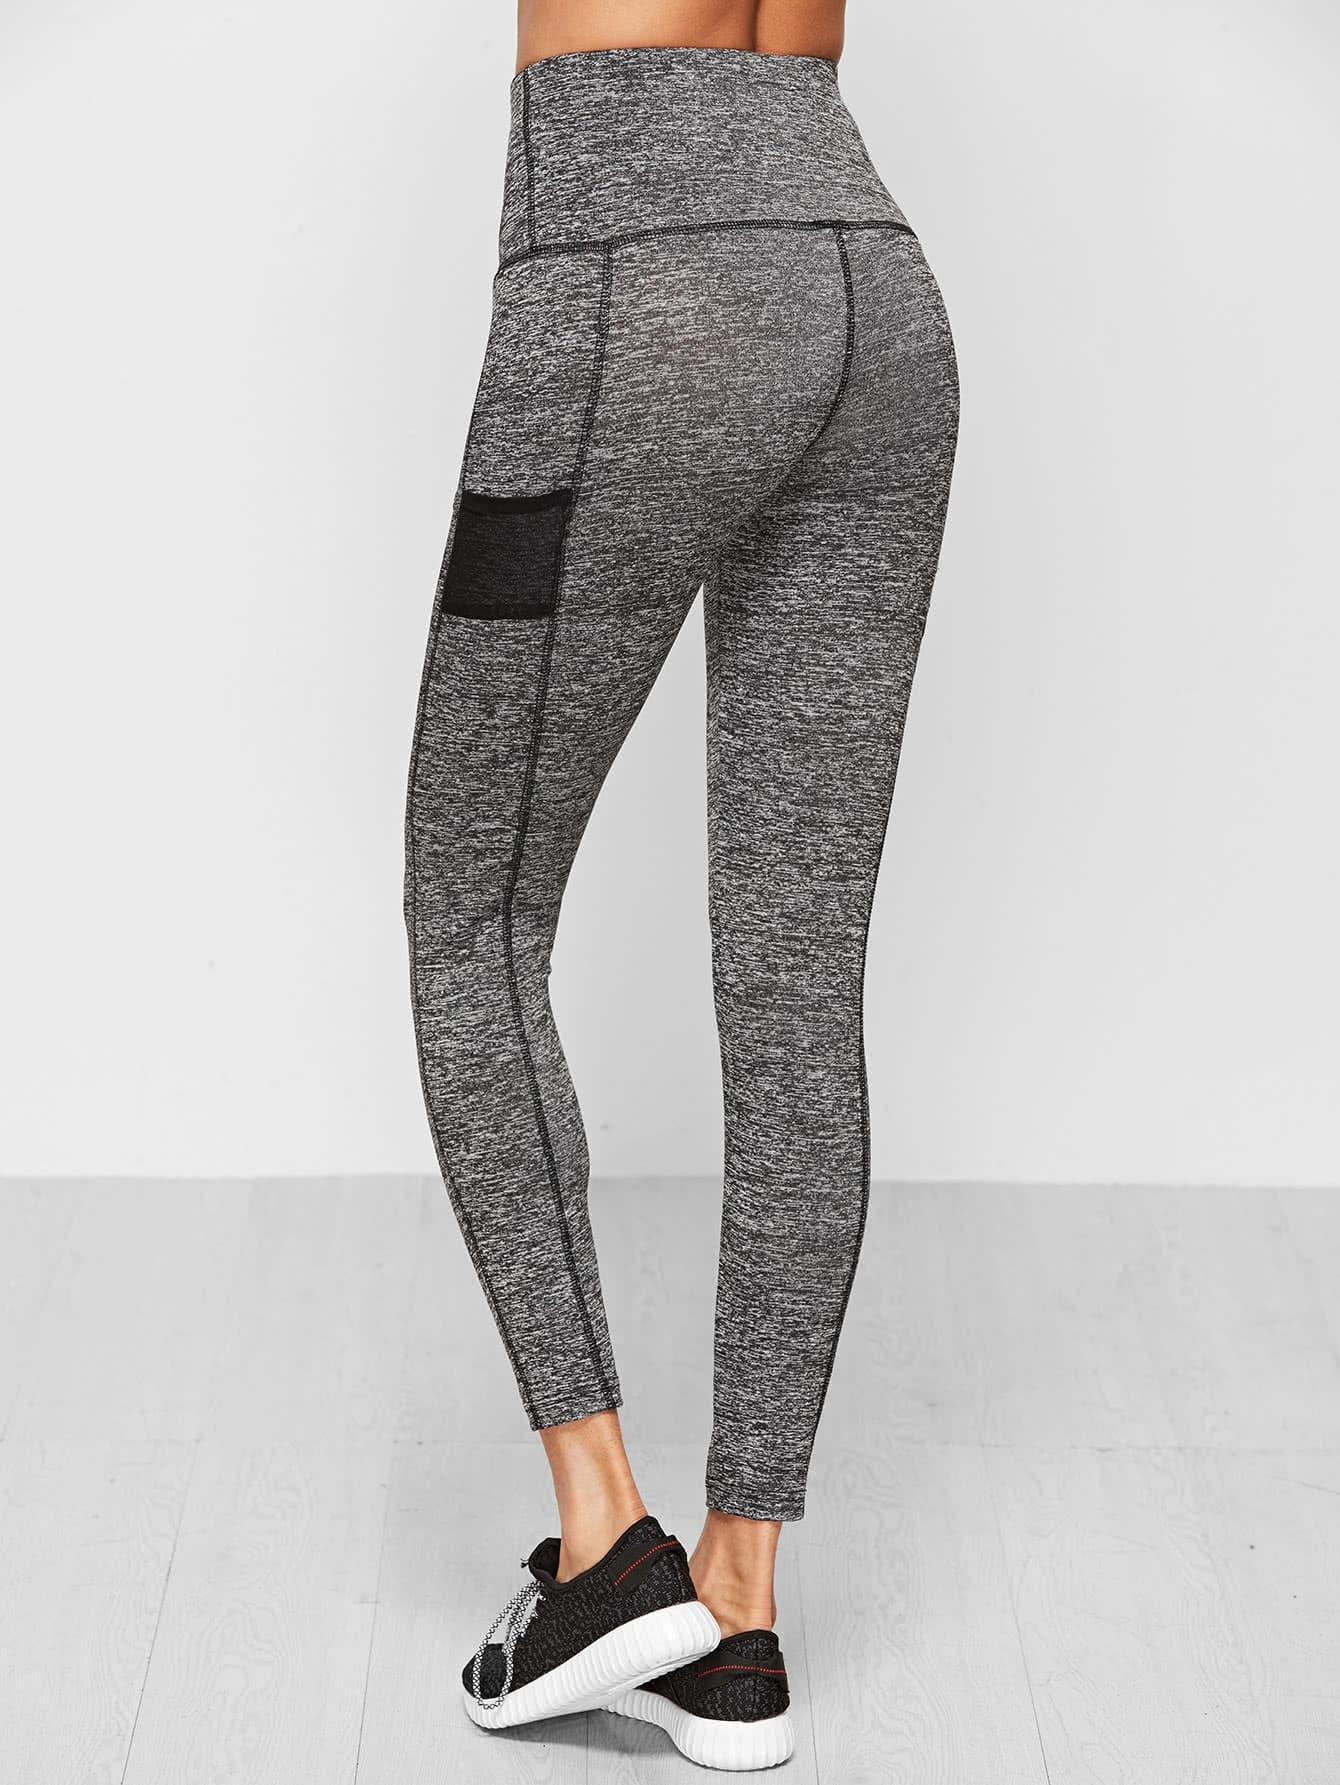 leggings161208701_2